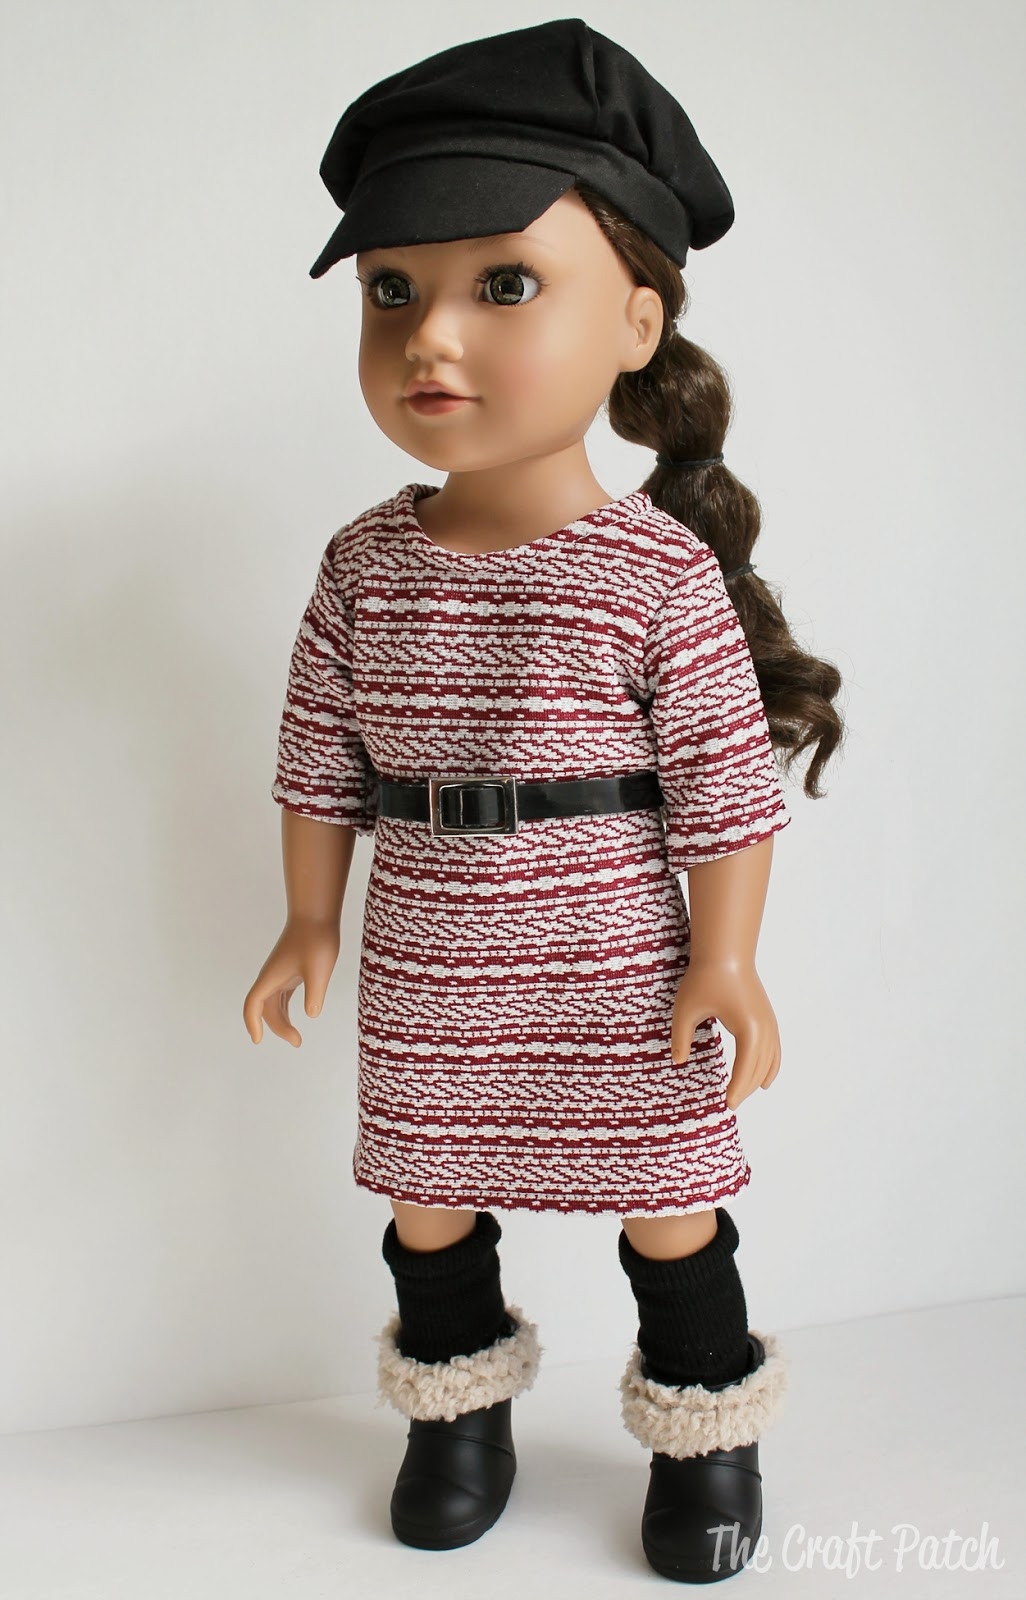 Doll Clothes Patterns Luxury the Craft Patch American Girl Doll Basic Knit Dress Of Great 43 Models Doll Clothes Patterns